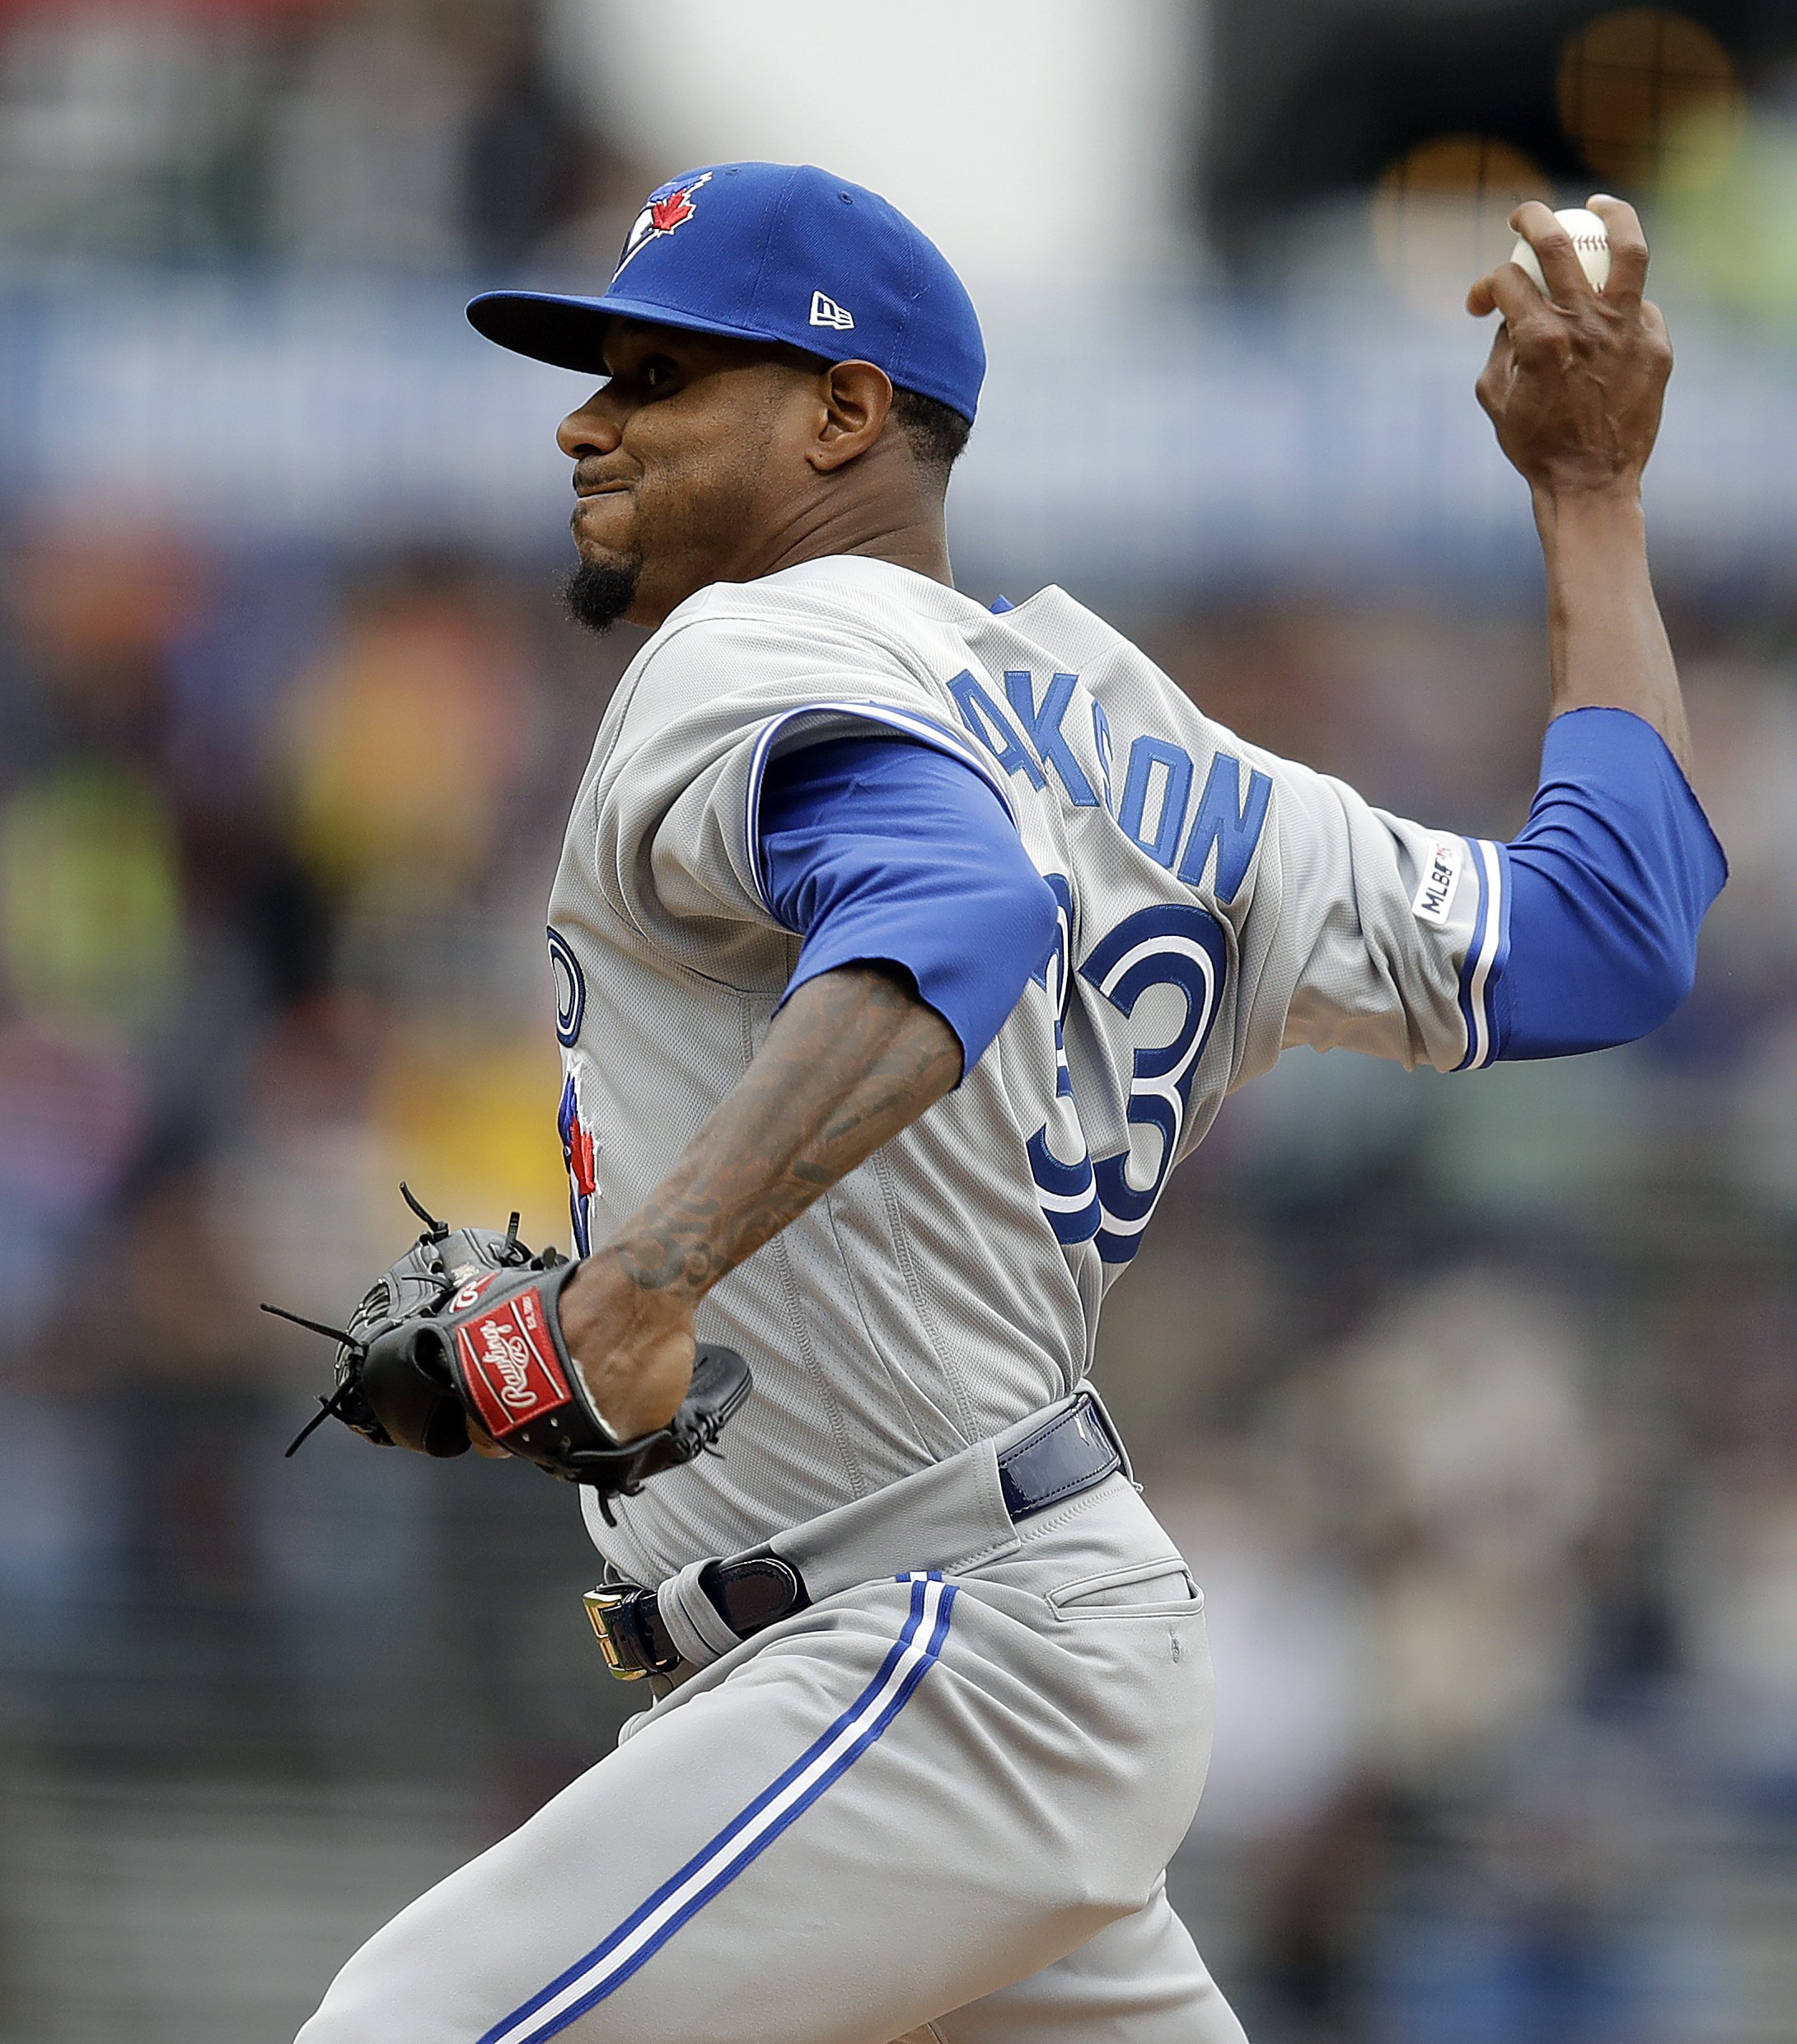 1bb86e49 Jackson suits up for record 14th team, Jays lose to Giants